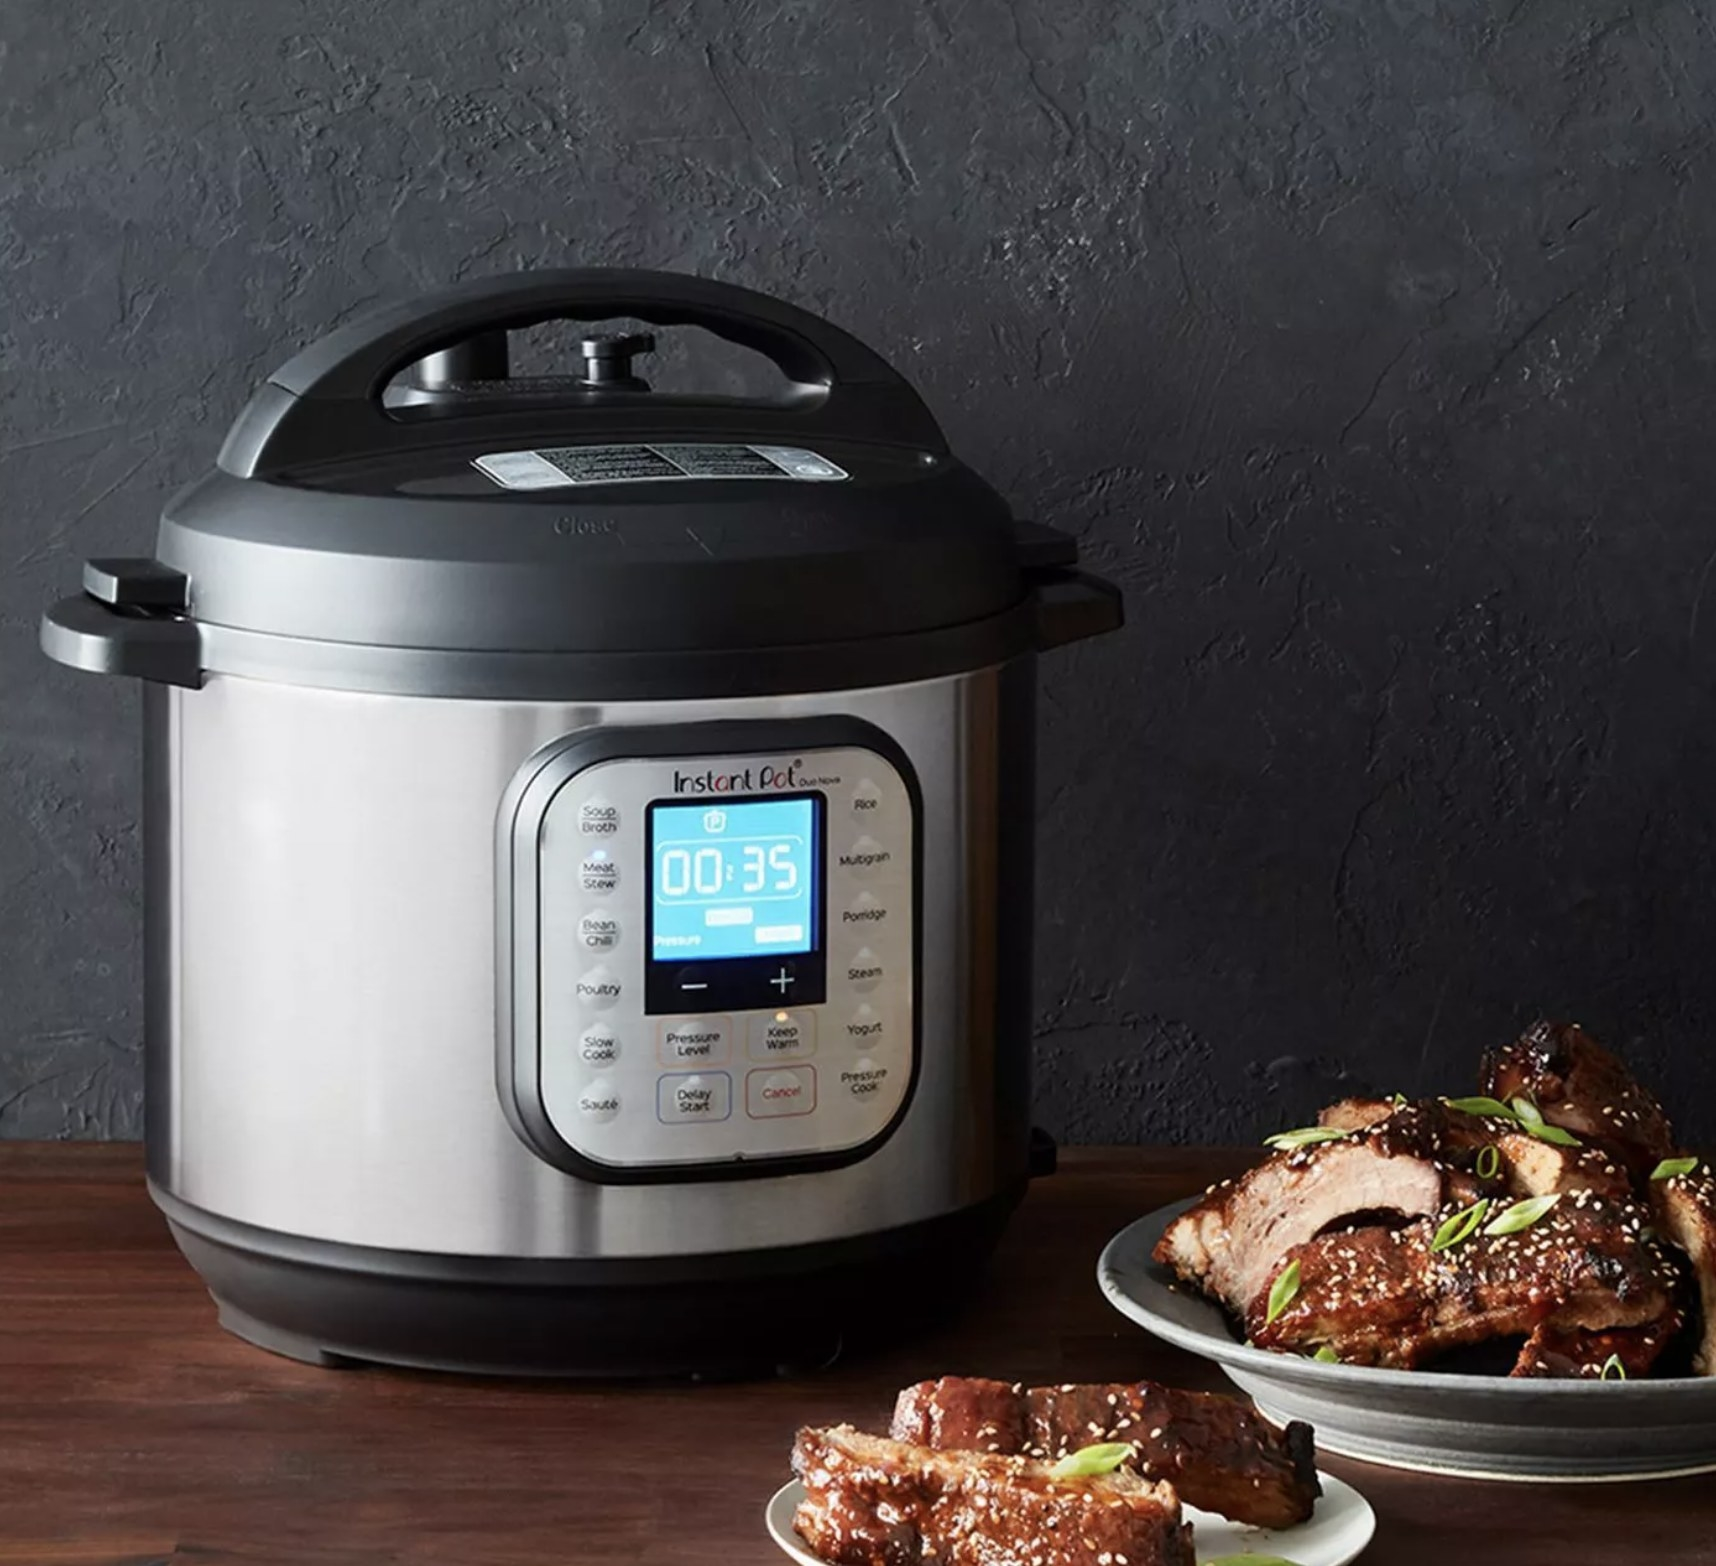 A silver pressure cooker pot with a black top and bottom and a digital screen not he front